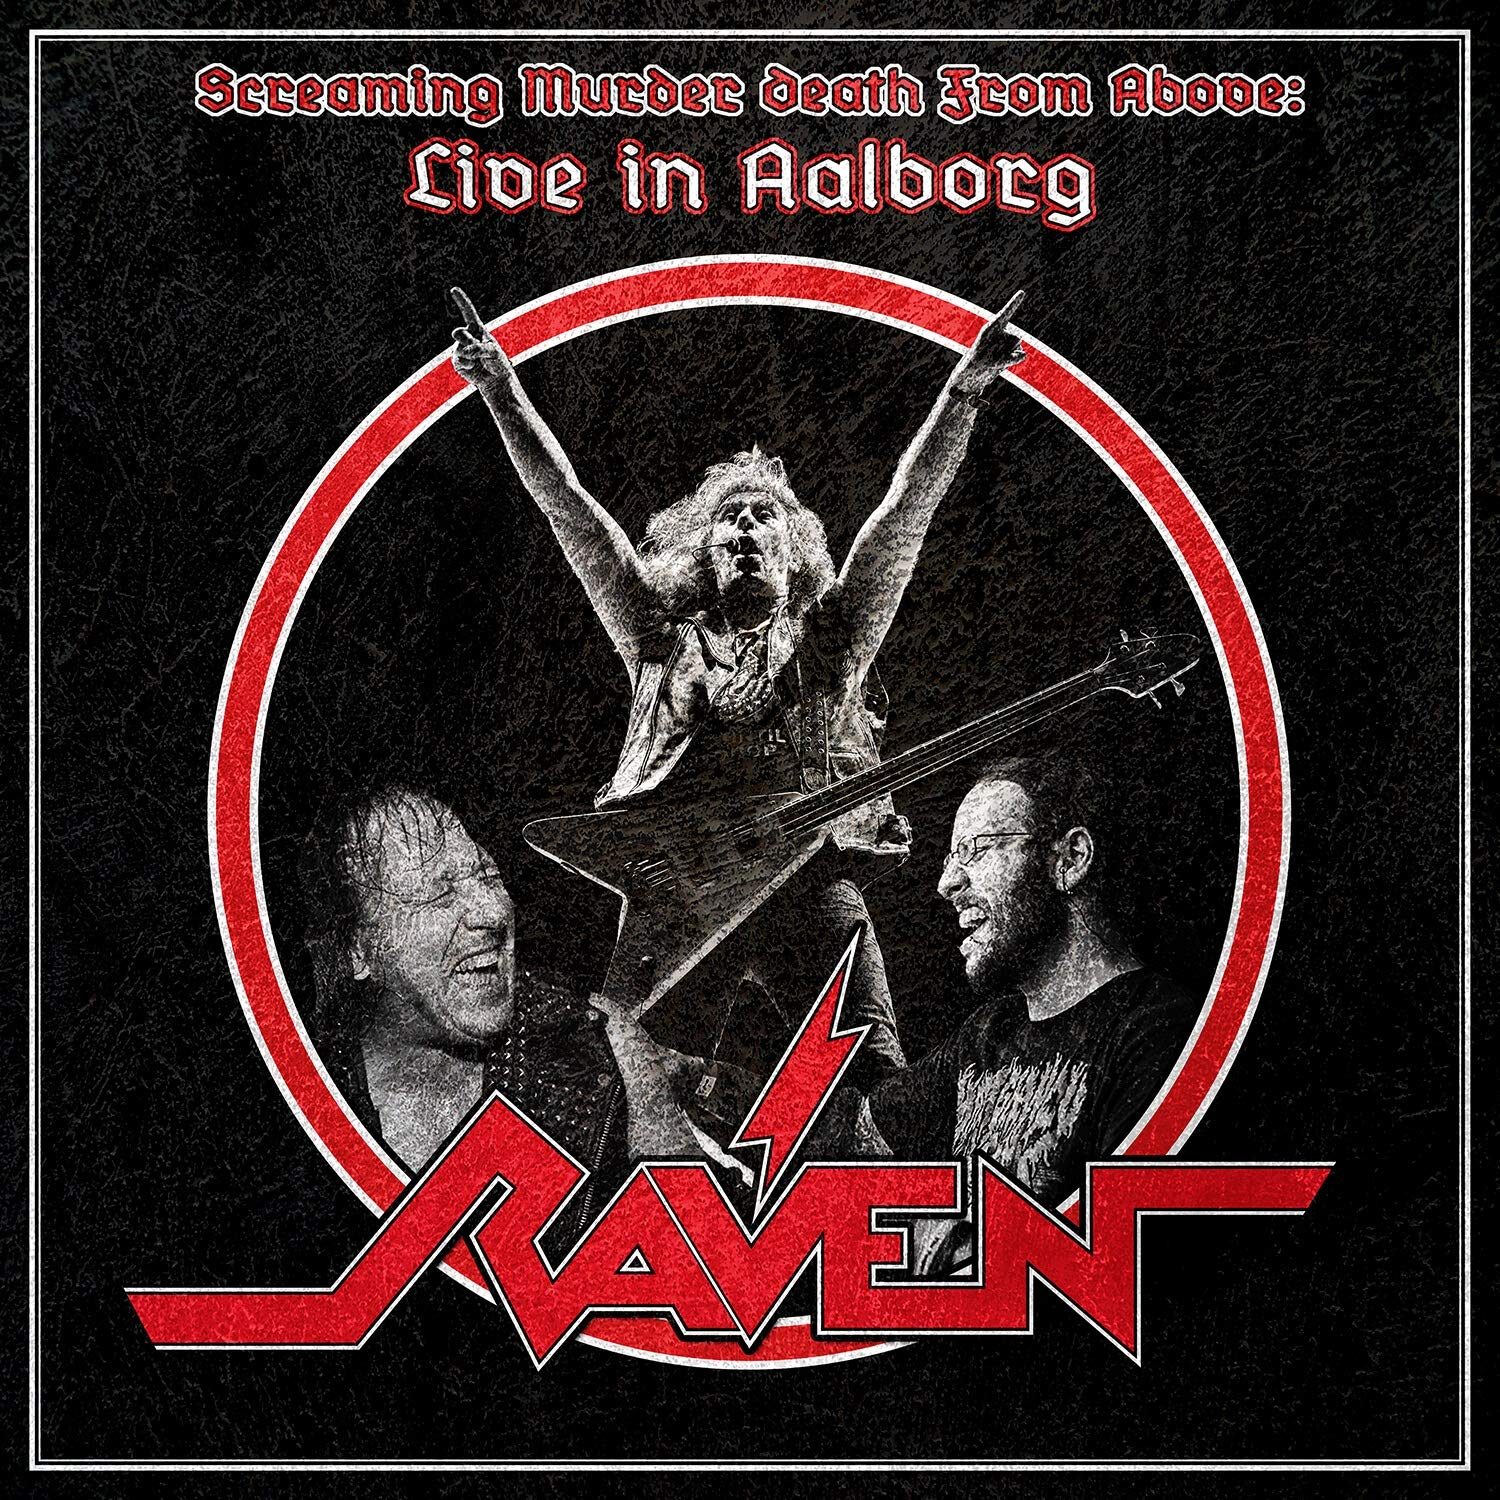 Raven - Screaming Murder Death From Above: Live In Aalborg